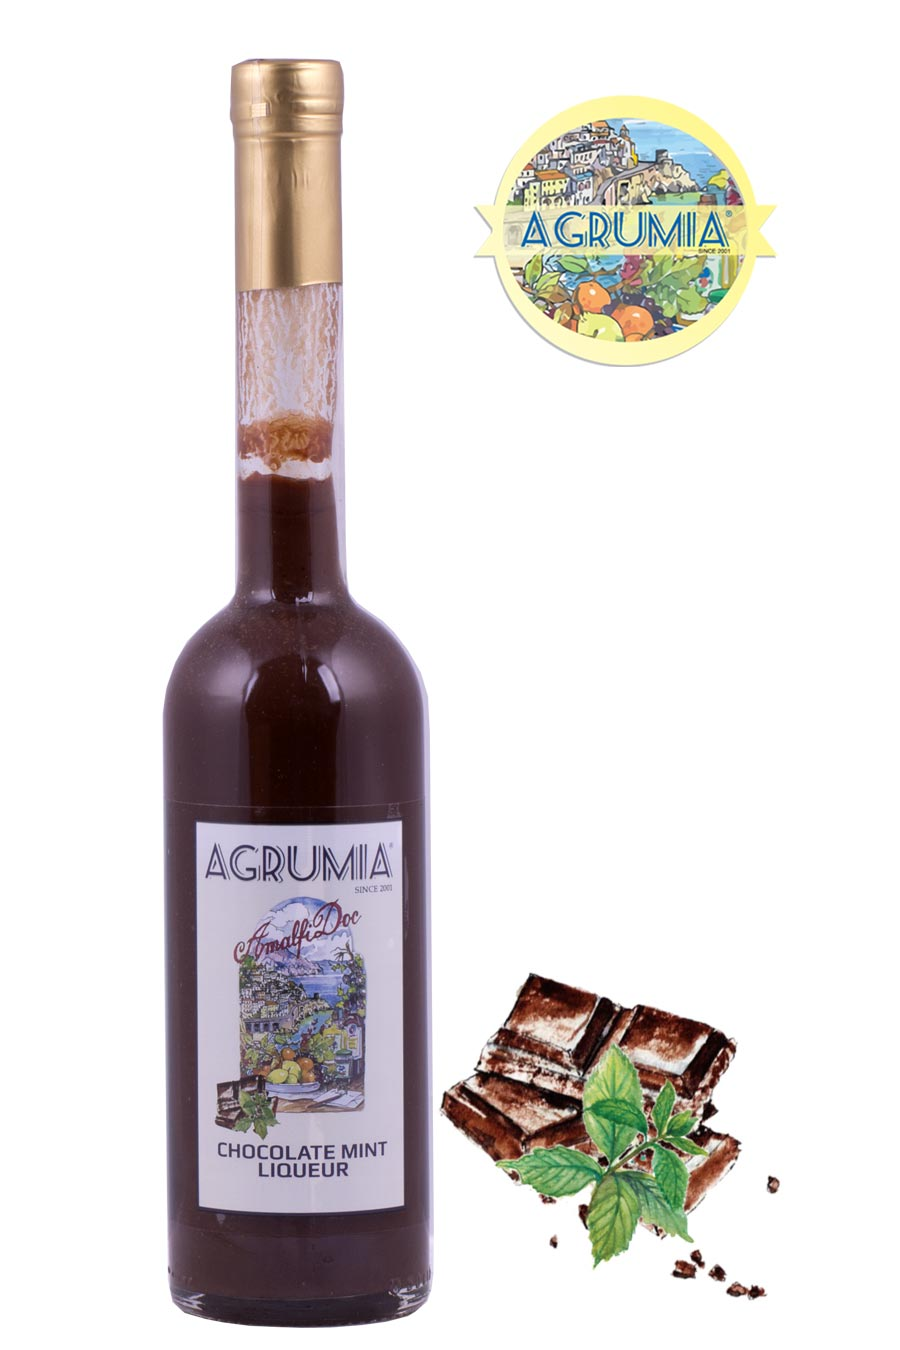 Agrumia Chocolate Mint Cream Liqueur 50cl - Agrumia